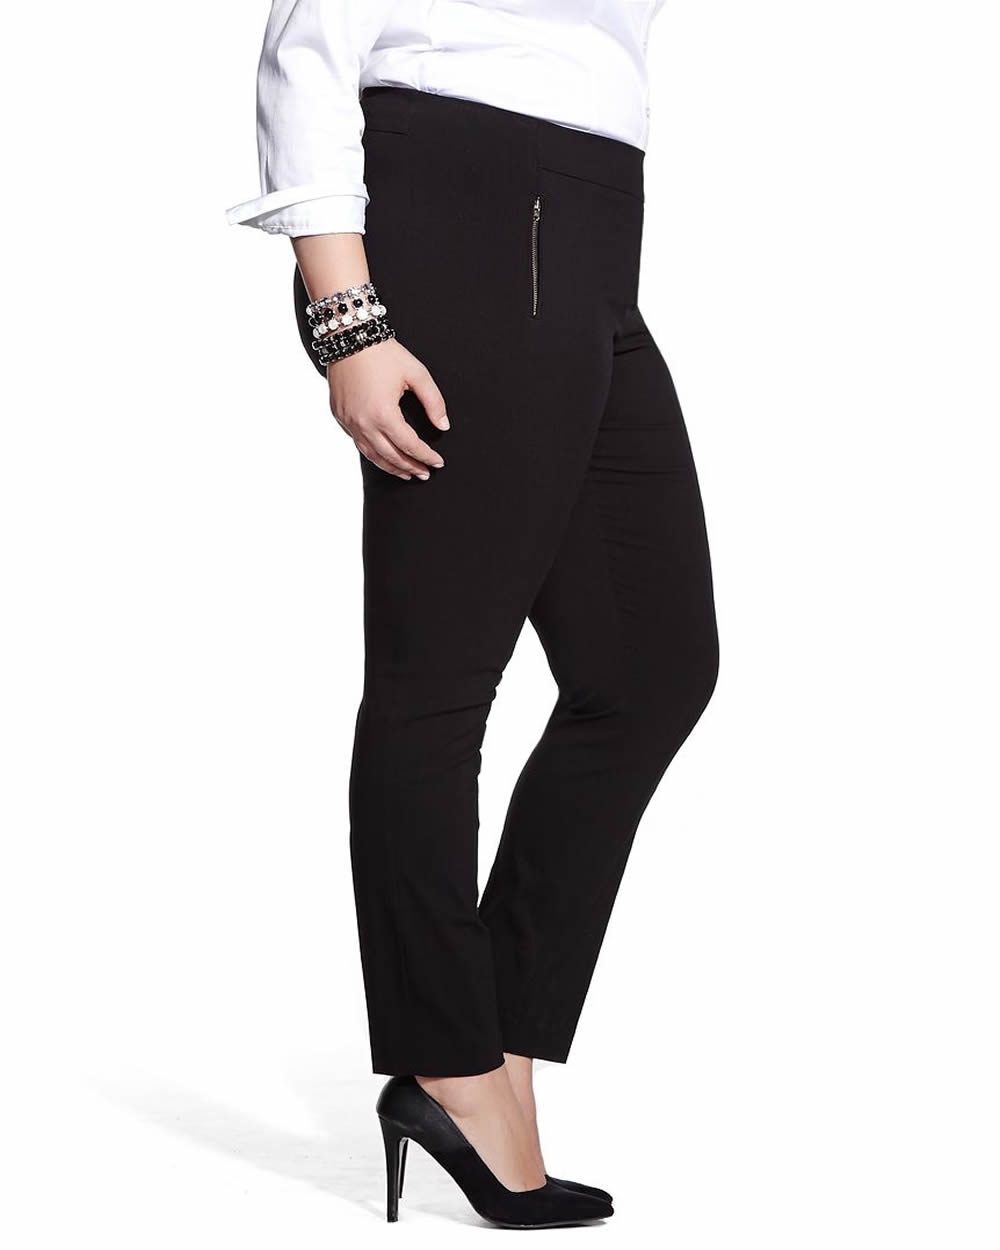 Plus Size Zac & Rachel butter millennium Hollywood waist ankle pants have a faux pockets, interior tummy control panel, and besom pockets. Includes a stretch detail for a comfortable wear. 27 inch inseam. 71% Rayon, 25% Nylon, 4% Spandex.